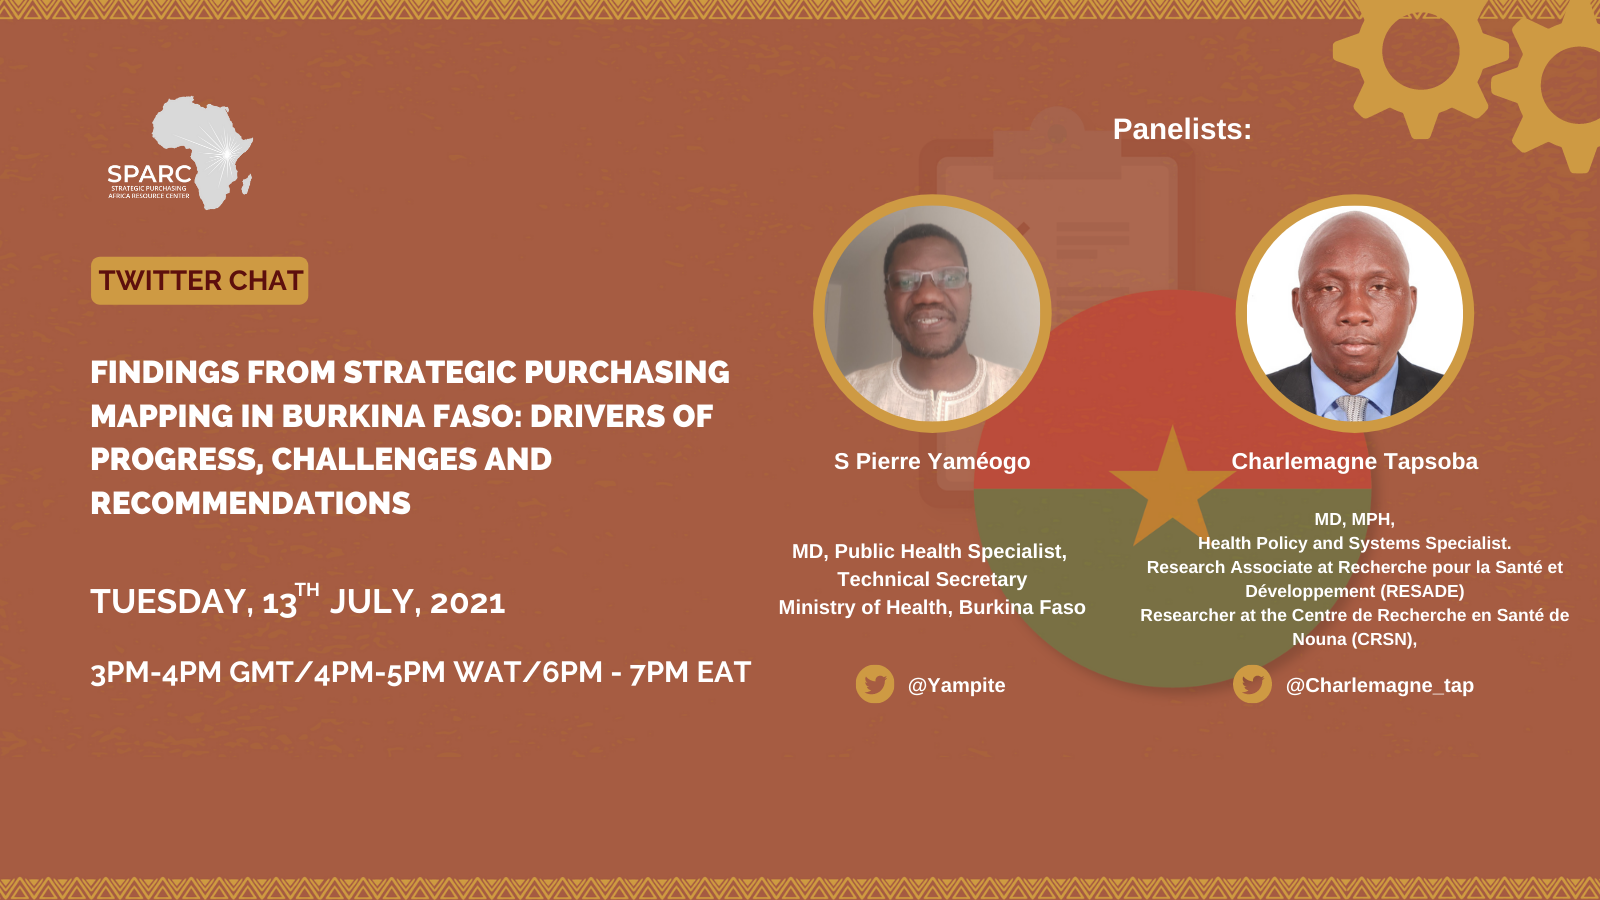 Curated Tweets from SPARCchat 15: 'Findings from Strategic Purchasing Mapping in Burkina Faso: Drivers of Progress, Challenges and Recommendations'